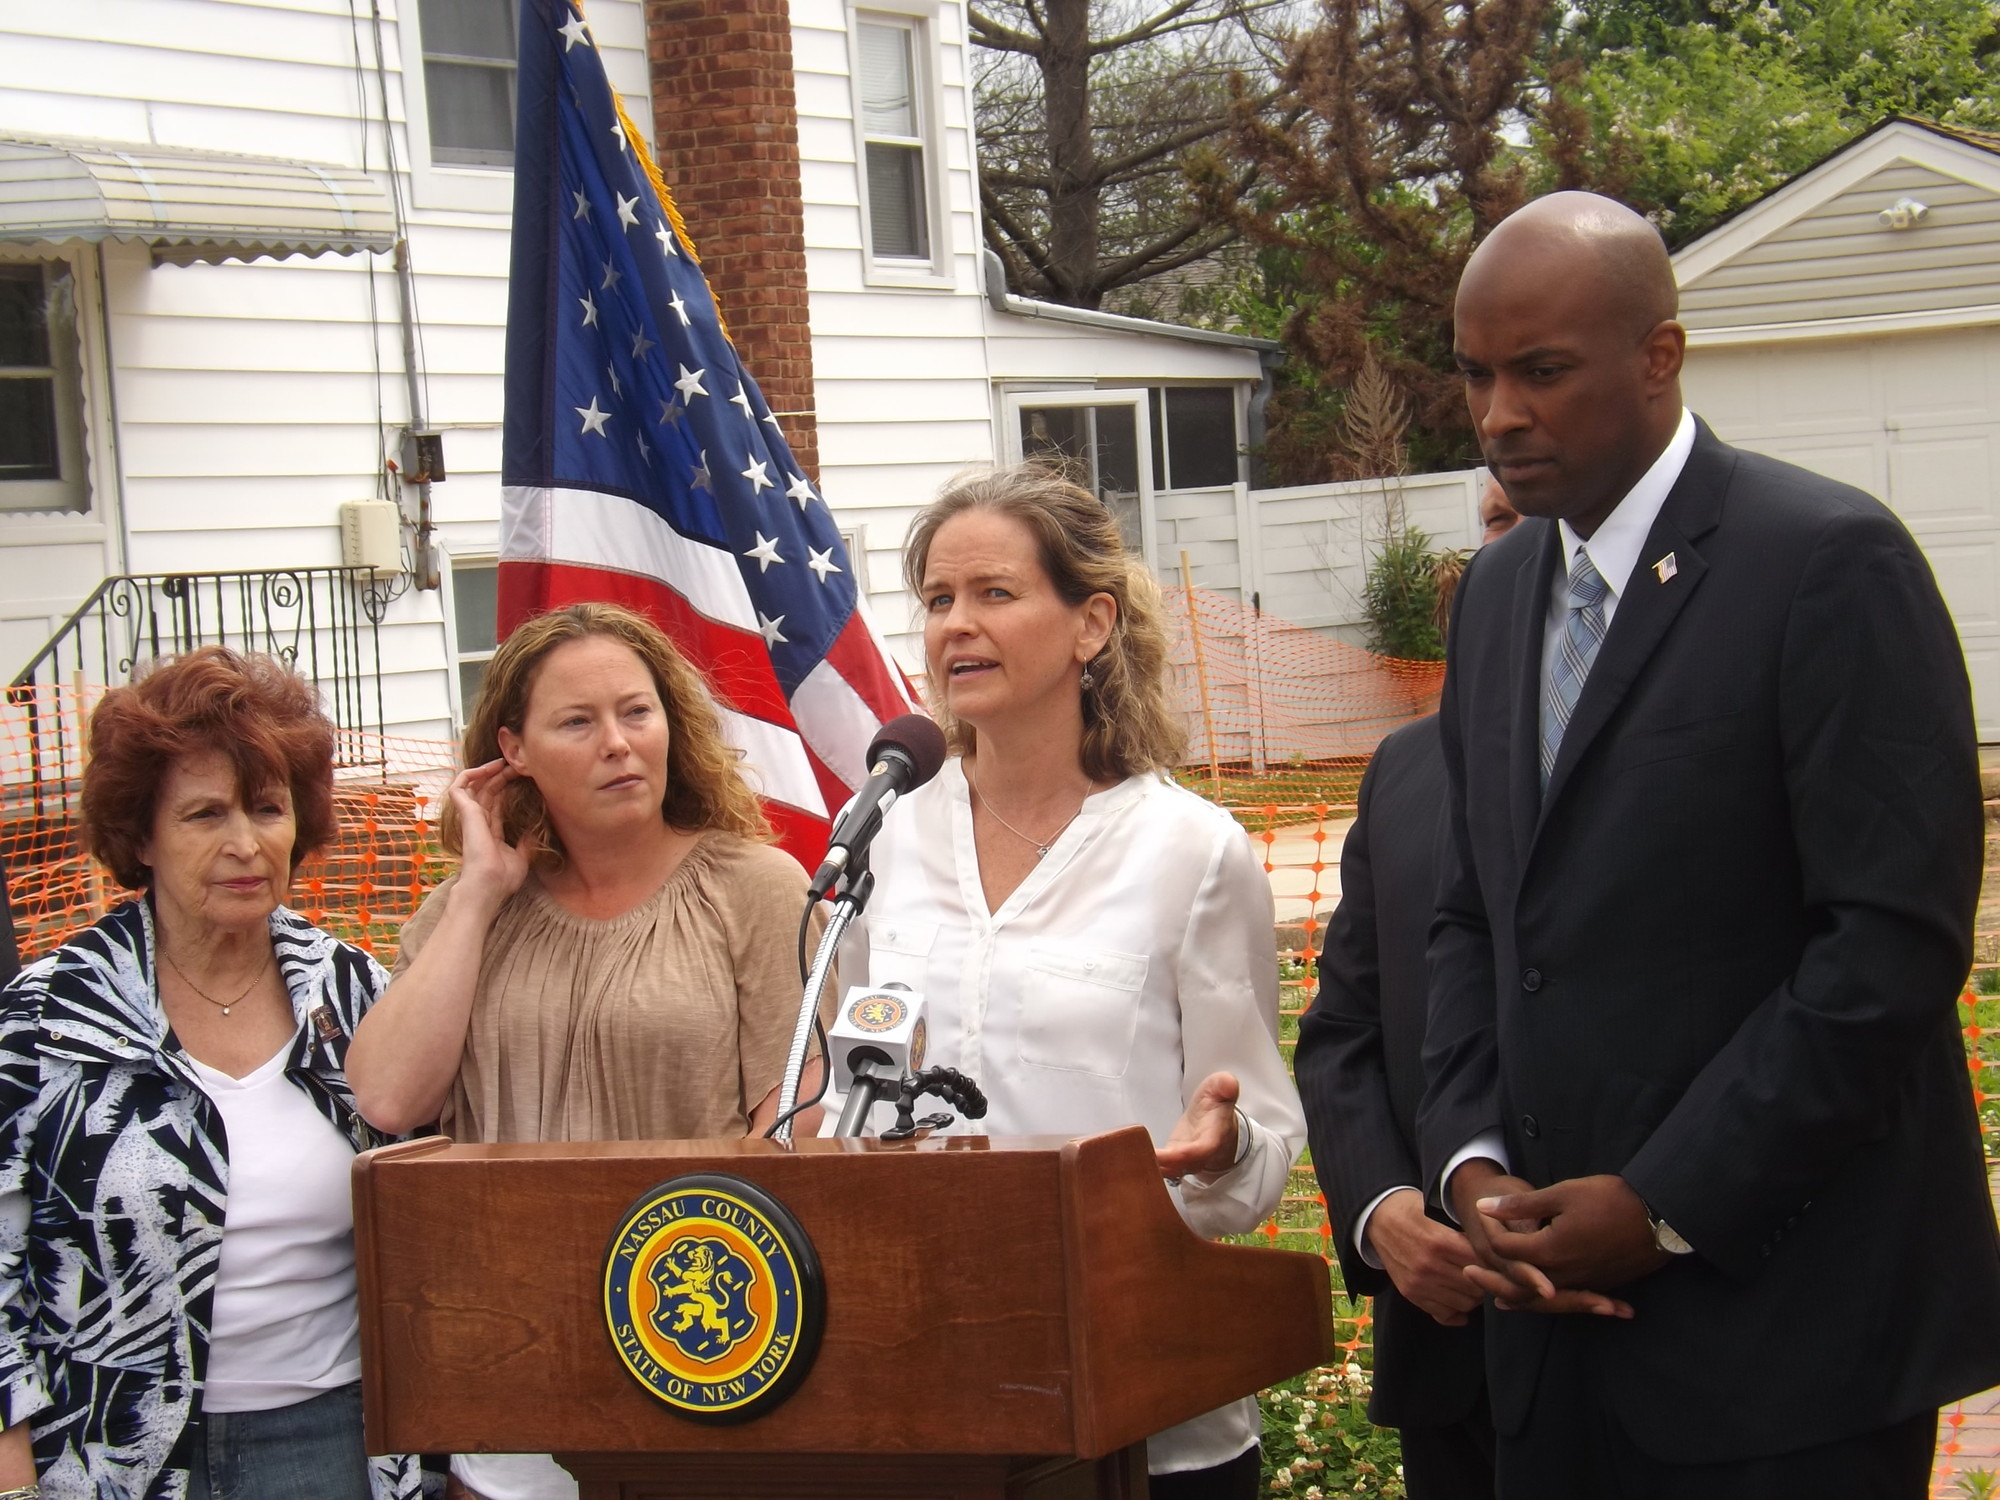 Legislator Laura Curran , second from right and her colleagues in the County Legislature, including Norma Gonsalves, far left, and Kevan Abrahams, said that re-funding the program was the right move at a press conference last week in front of the property of East Rockaway resident Theresa Gaffney, second from left.